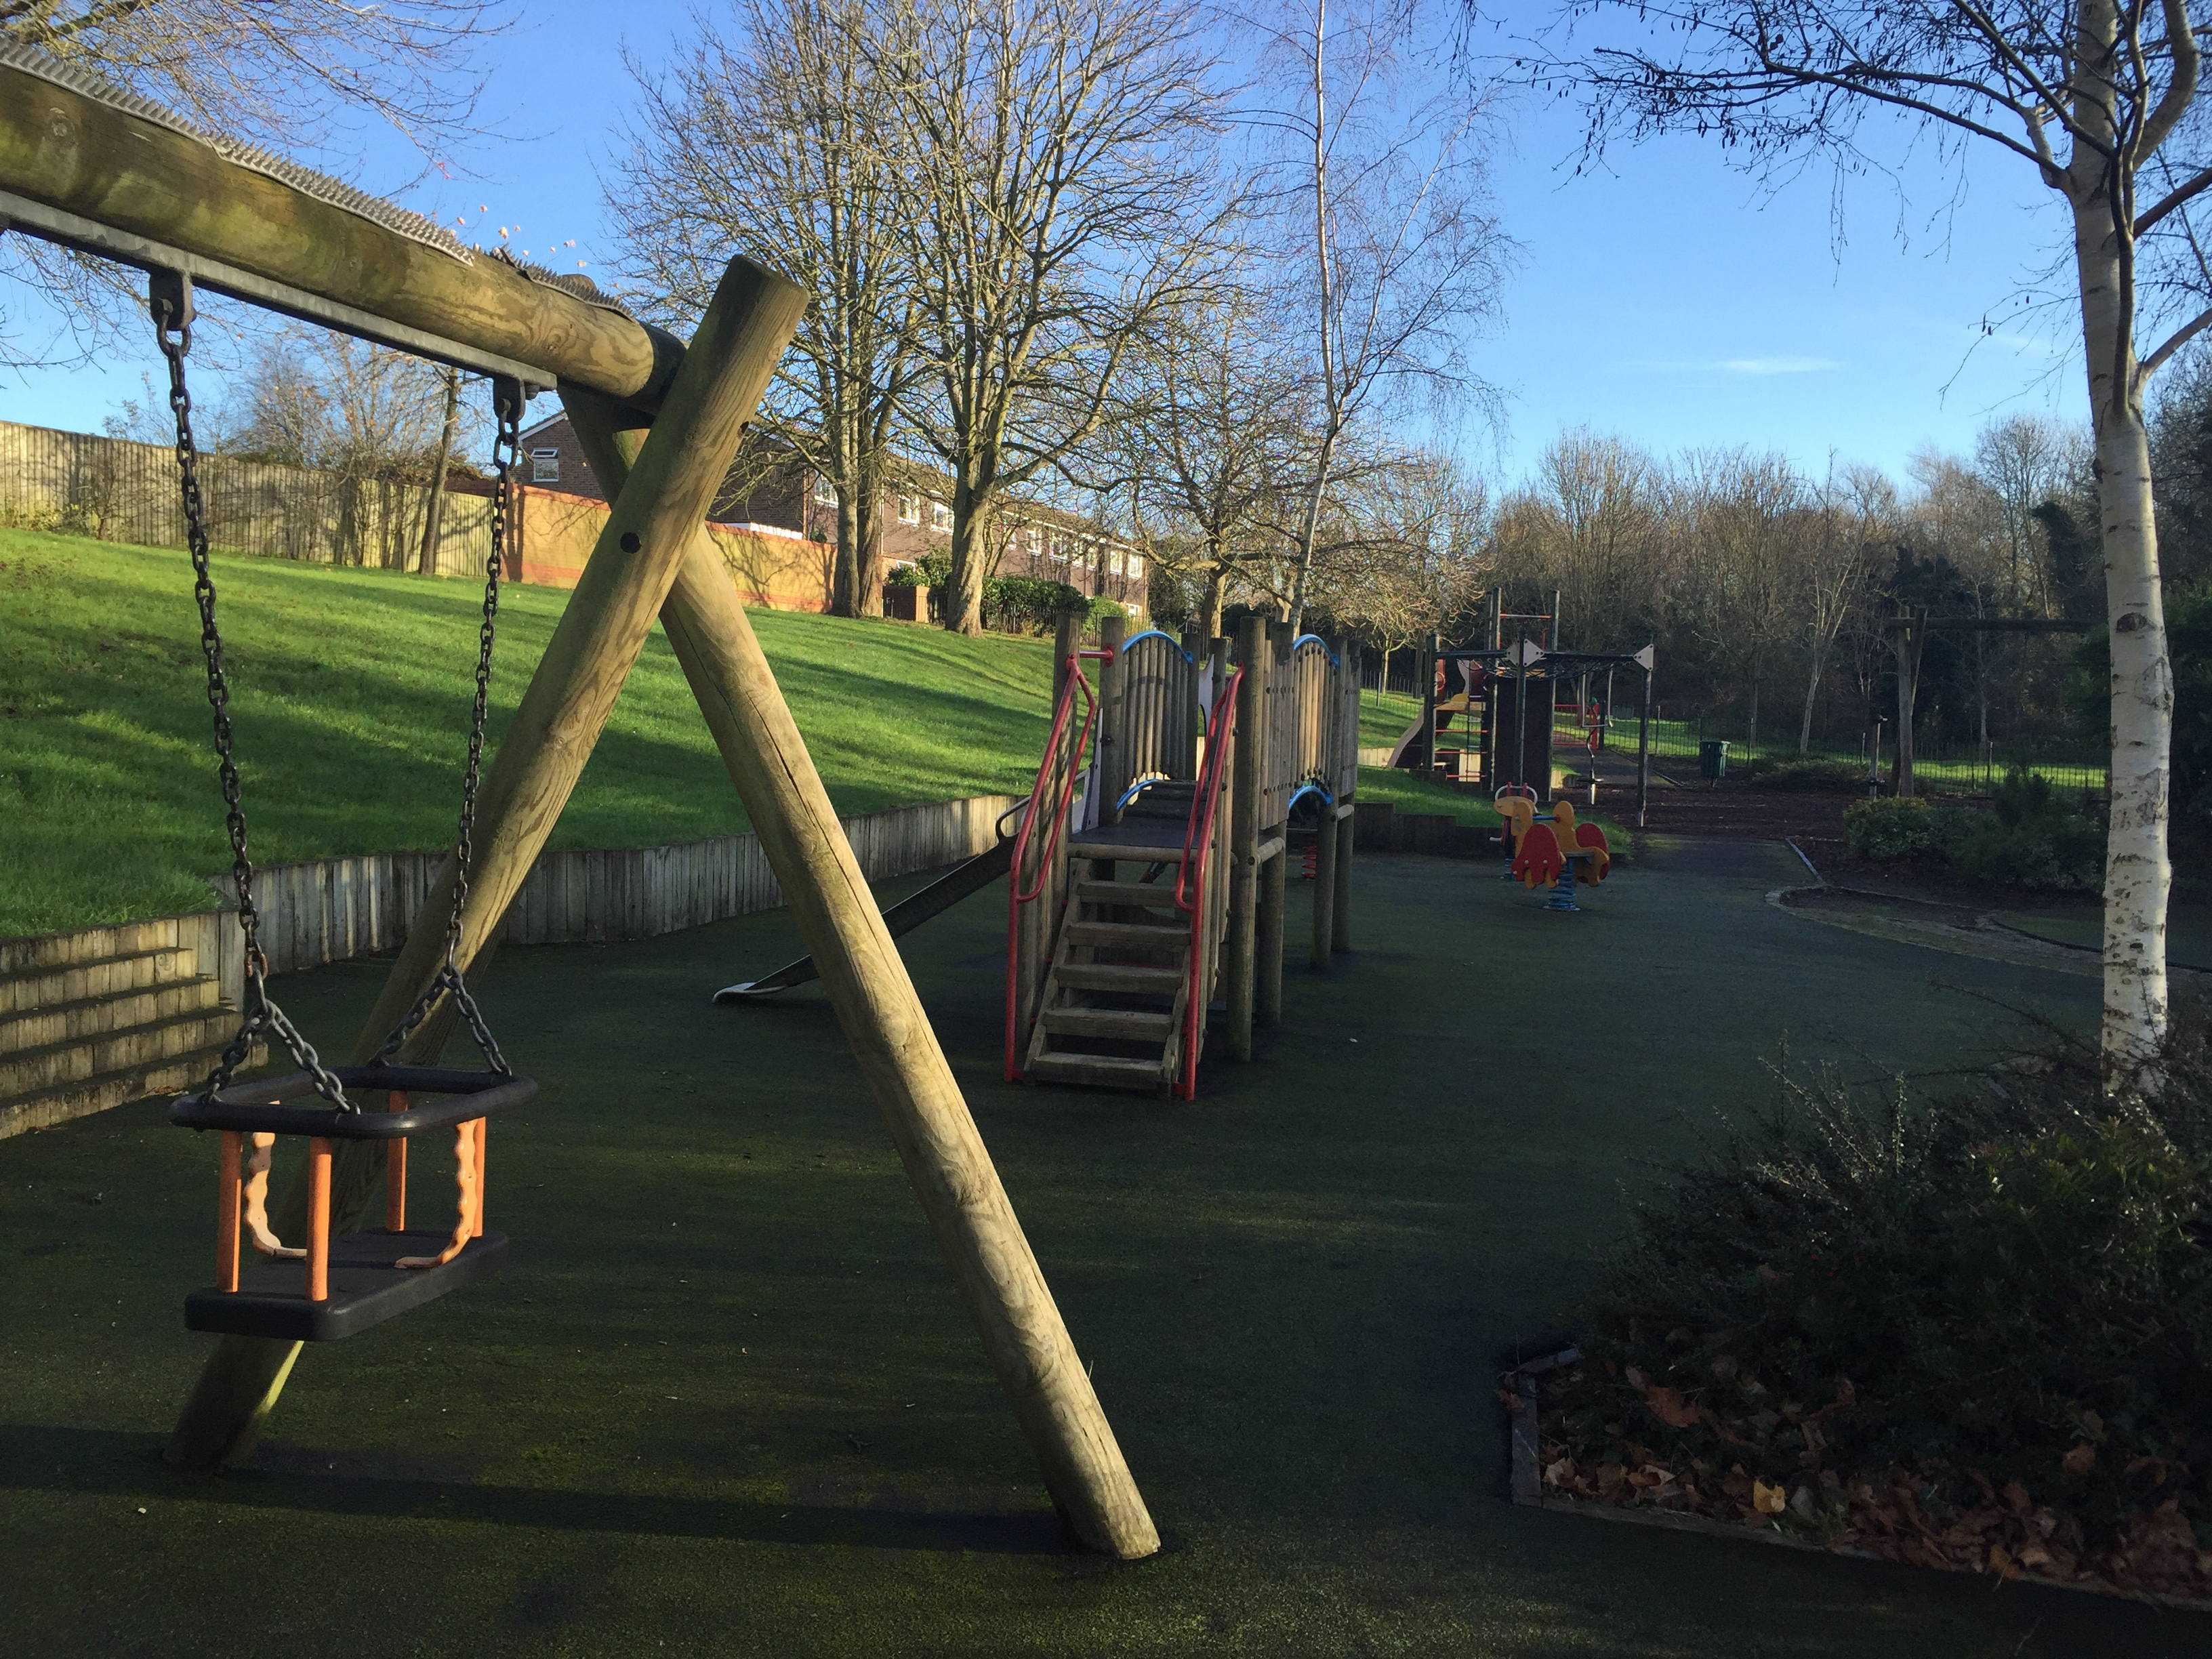 The Chestnuts Play Area